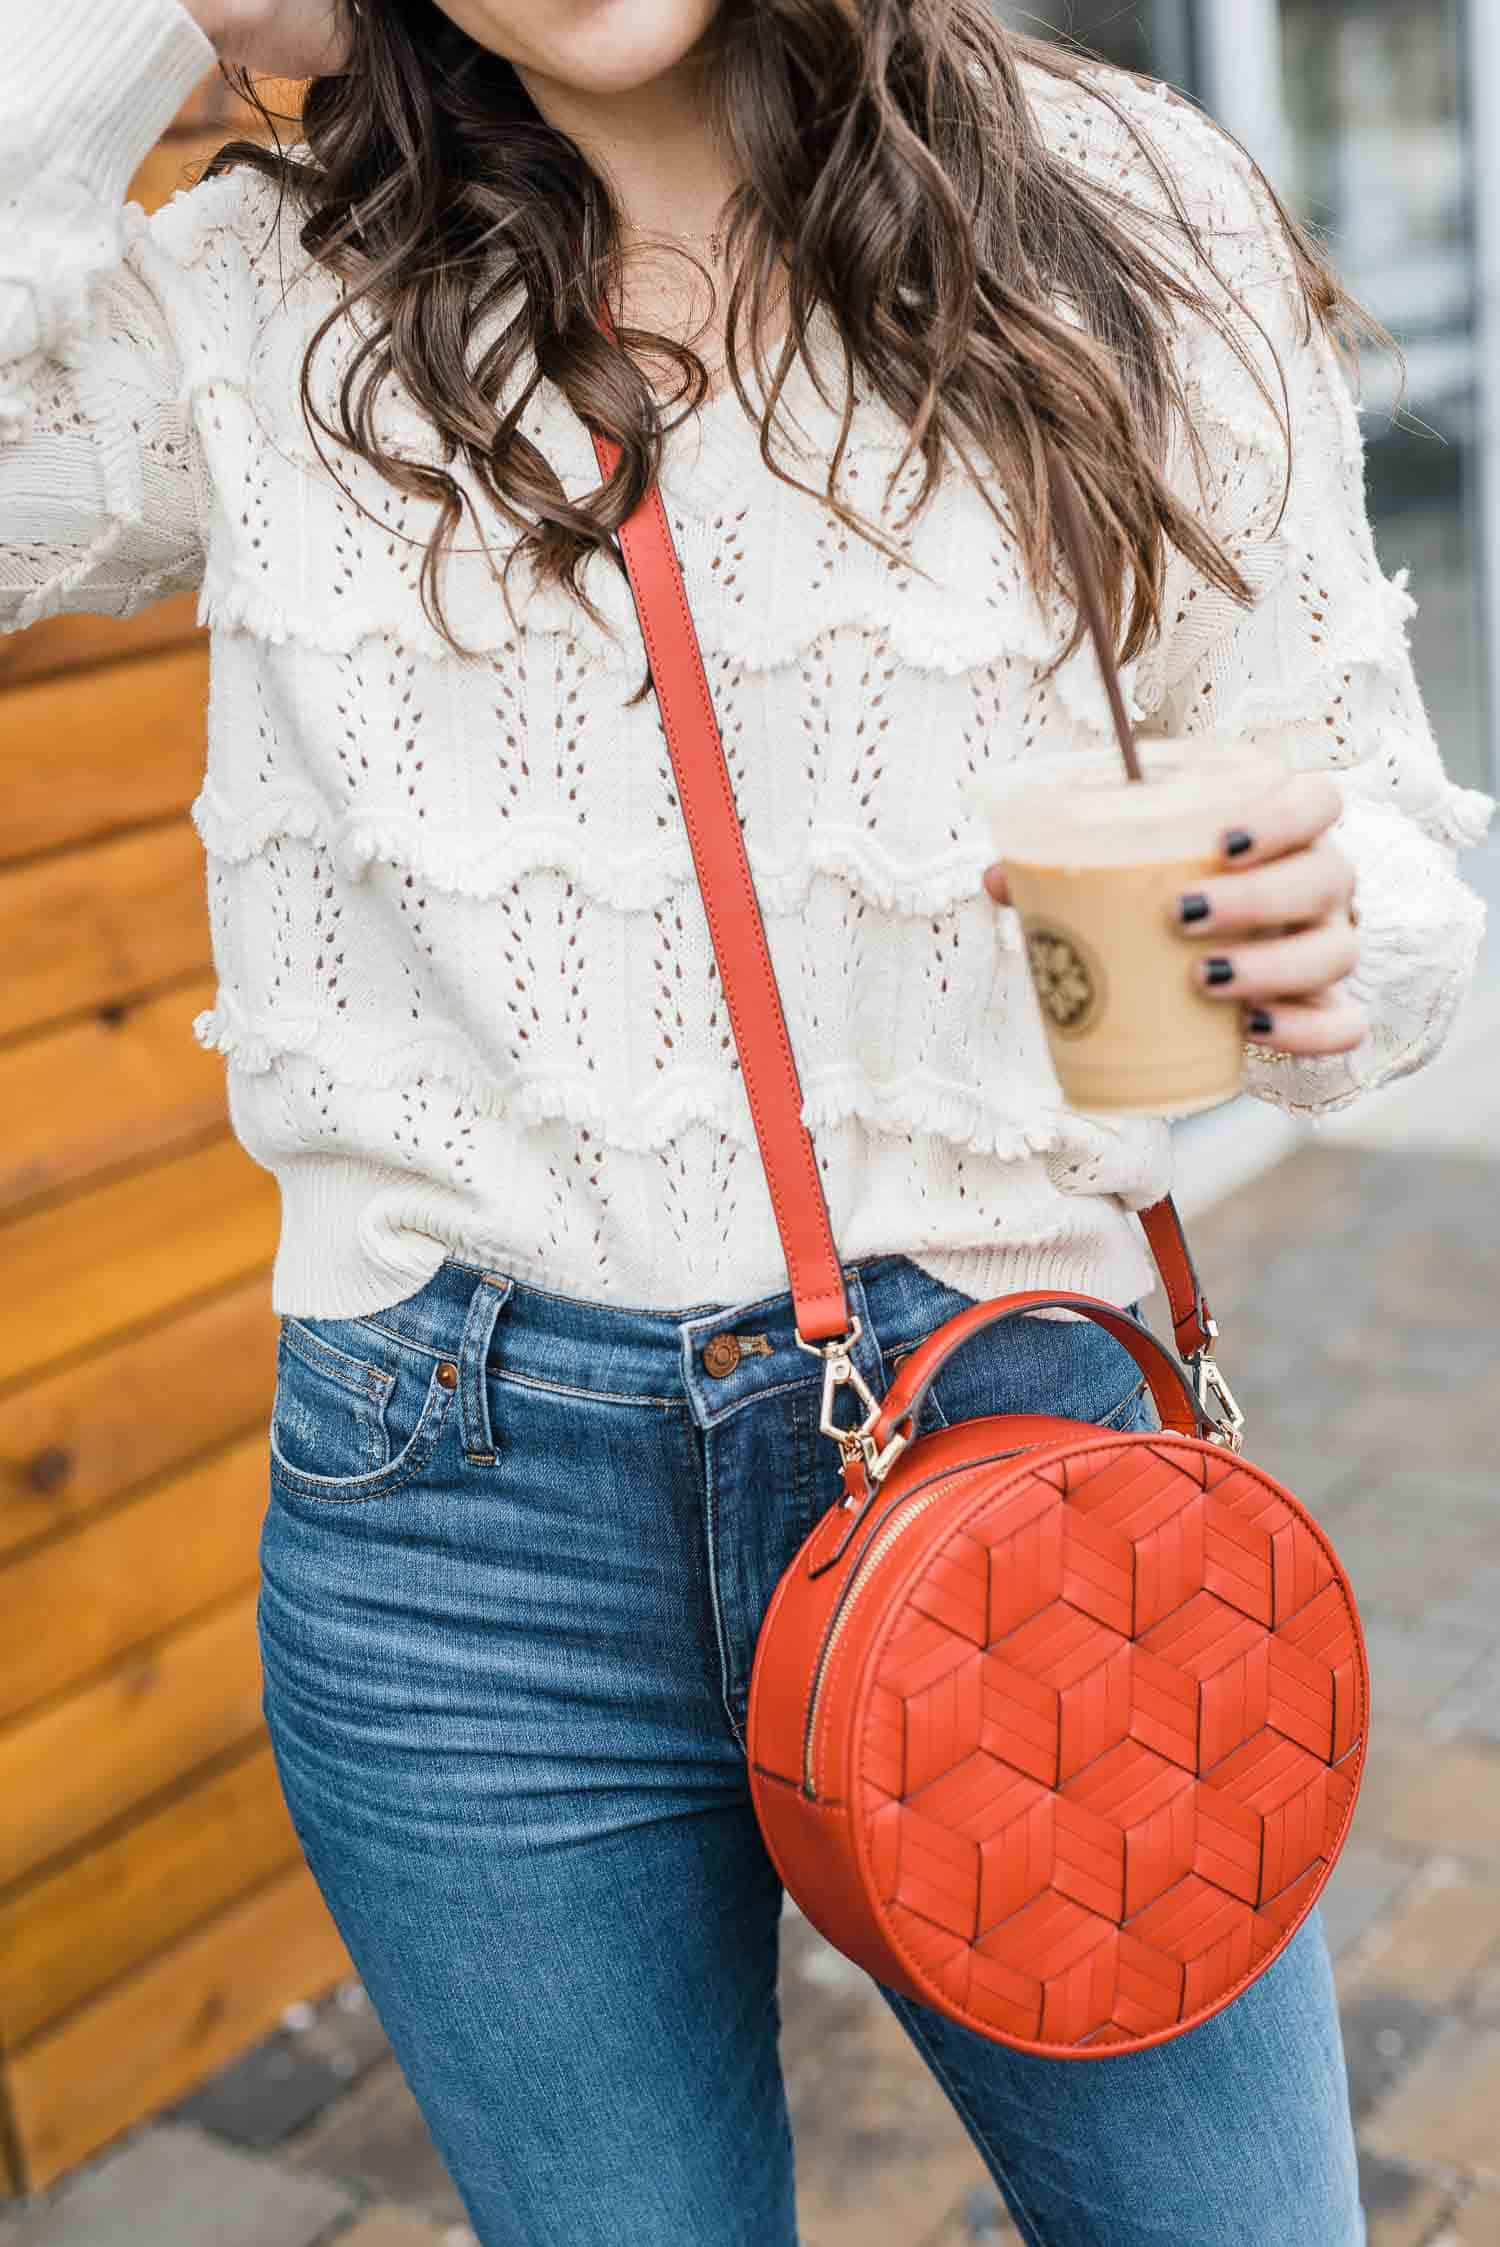 cream sweater details with fringe, red leather bag